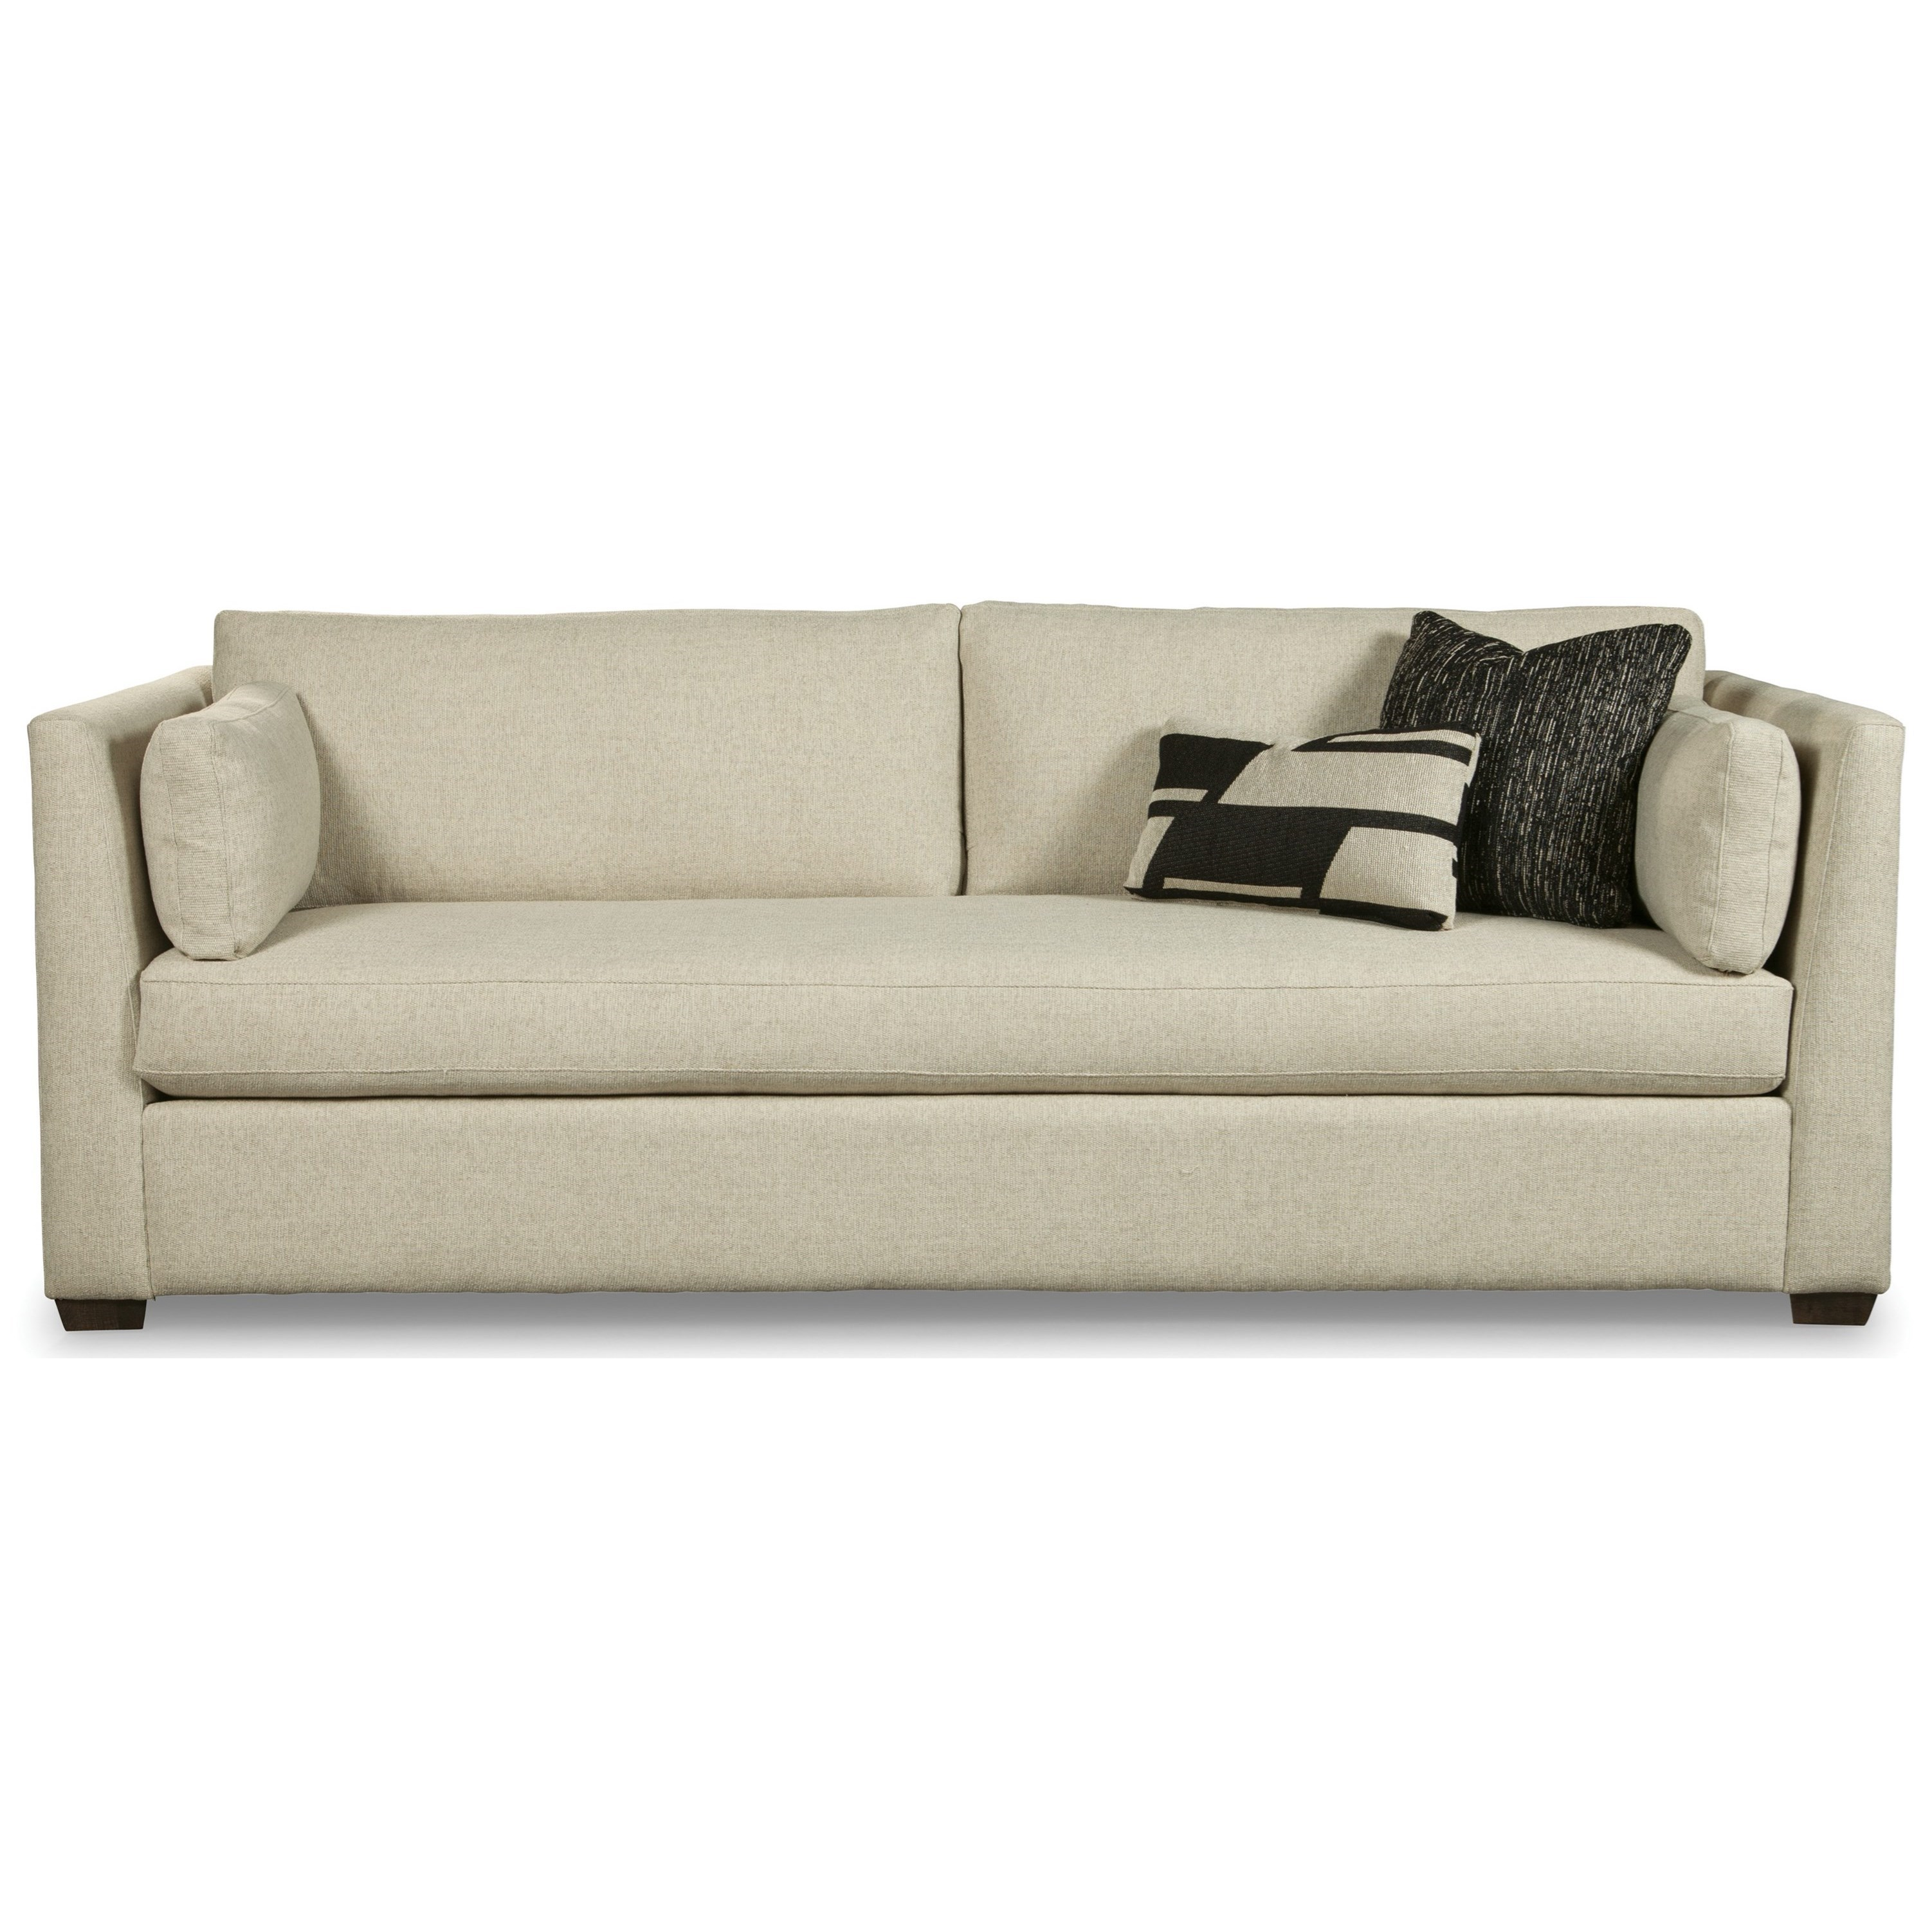 ... Bench Seat Sofa. Rachael Ray Home By Craftmaster Highline Contemporary  97 Inch